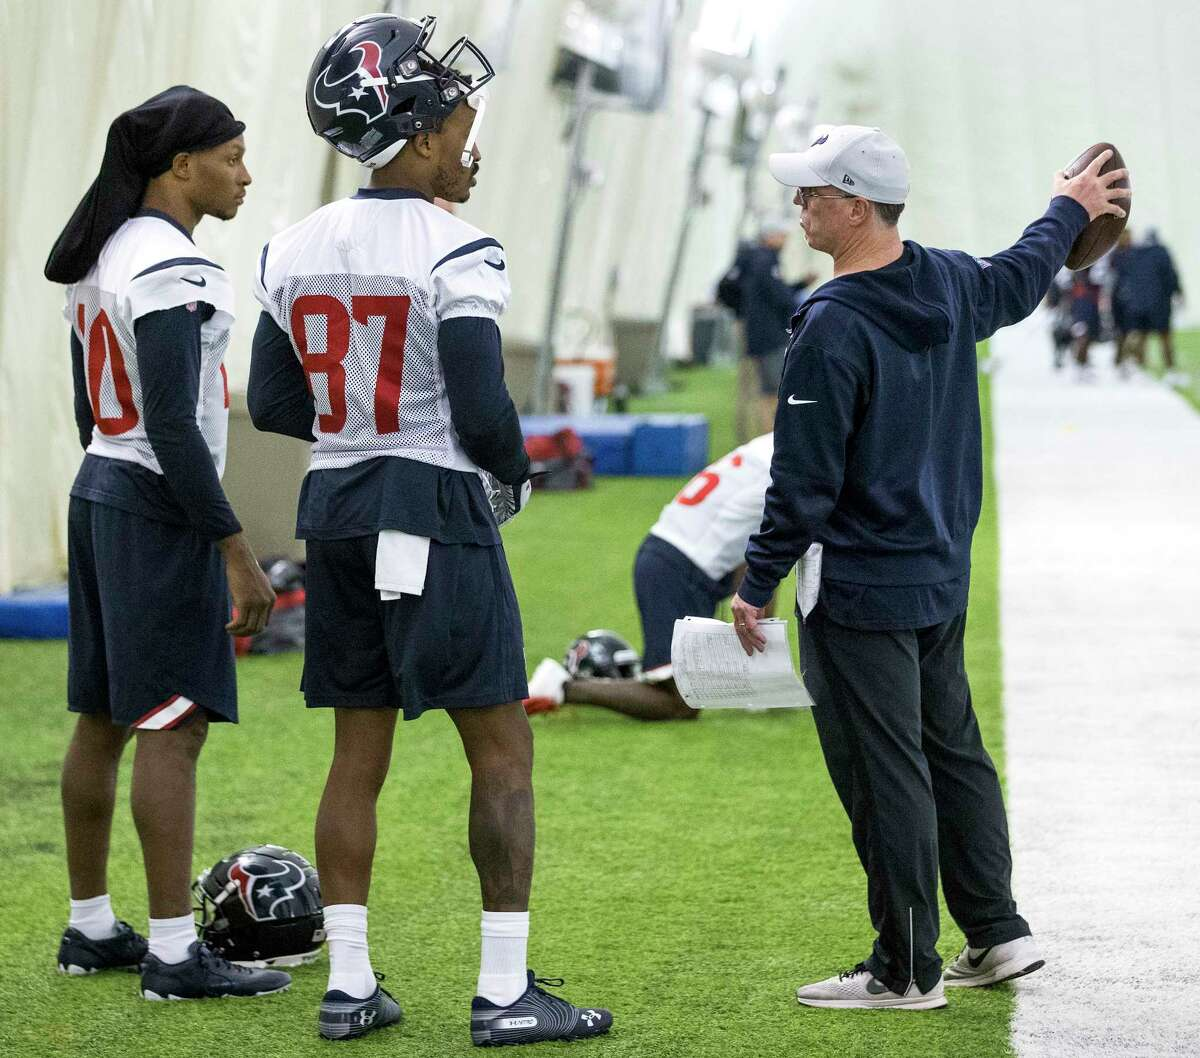 Houston Texans wide receivers DeAndre Hopkins (10), and Demaryius Thomas (87) listen to wide receivers coach John Perry during practice at The Methodist Training Center on Wednesday, Oct. 31, 2018, in Houston. Thomas was aquired by the Texans in an NFL trade deadline deal with the Denver Broncos.